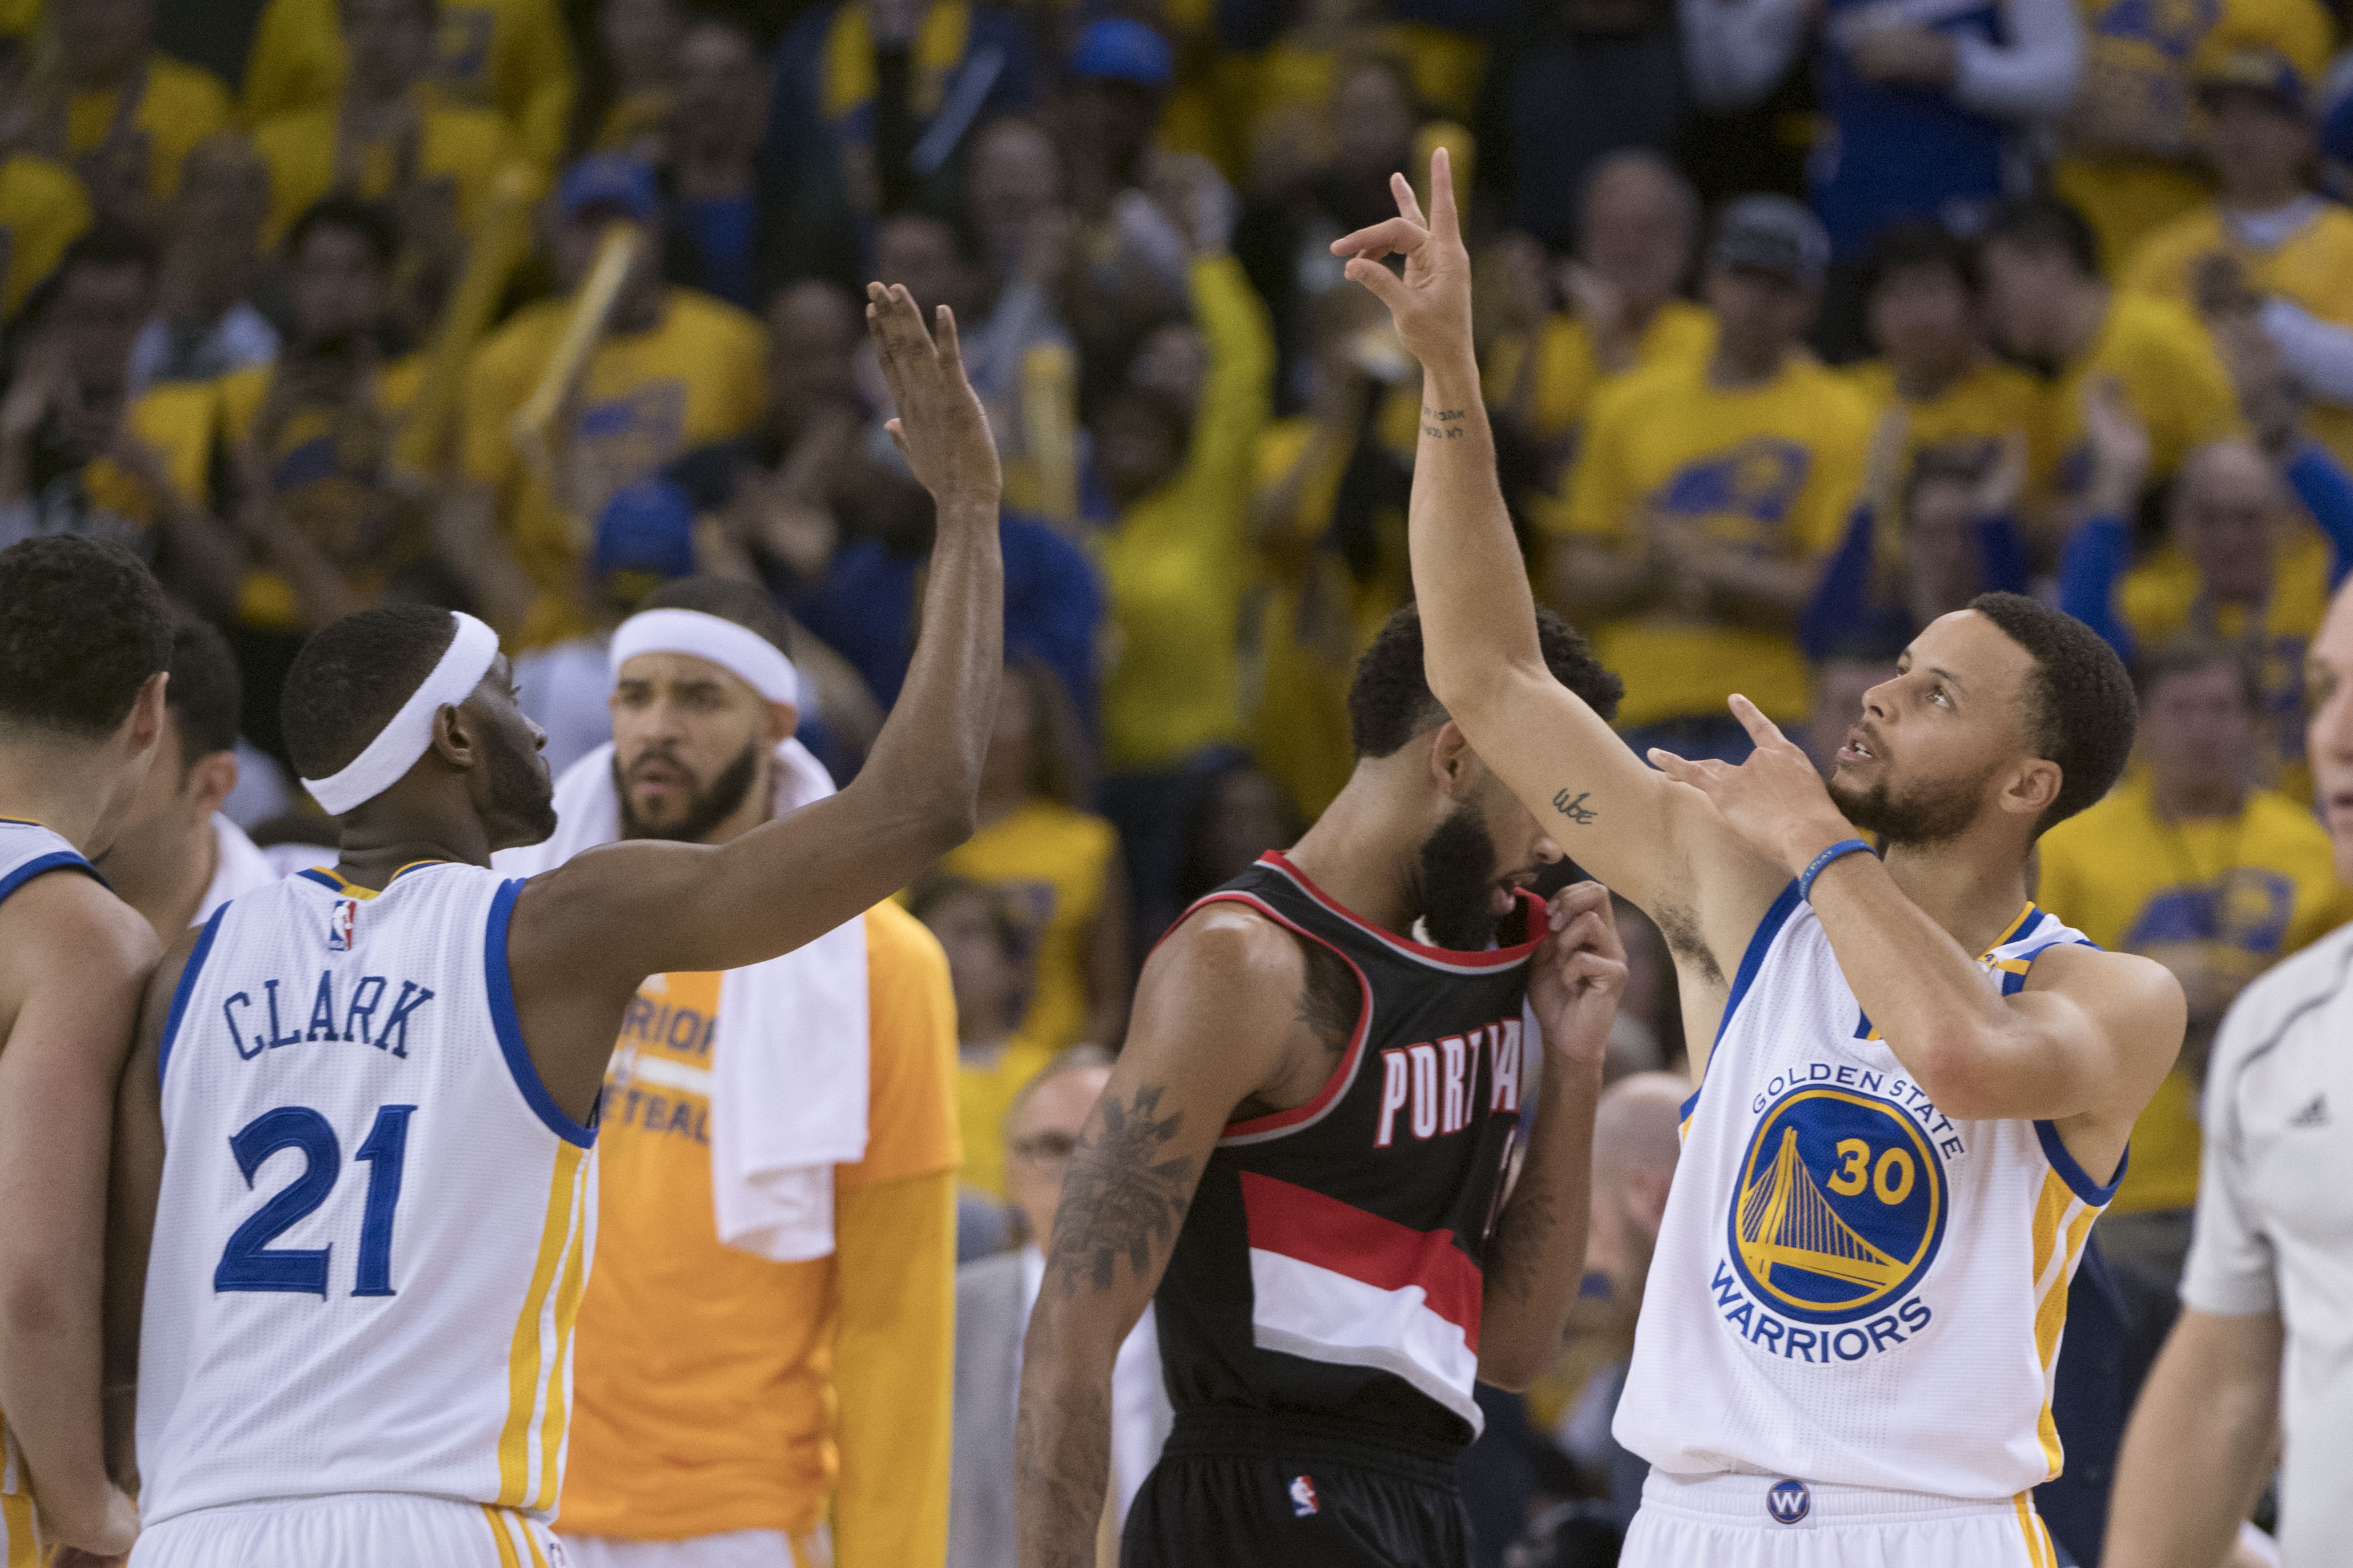 April 16, 2017; Oakland, CA, USA; Golden State Warriors guard Stephen Curry (30) celebrates with guard Ian Clark (21) against the Portland Trail Blazers during the fourth quarter in game one of the first round of the 2017 NBA Playoffs at Oracle Arena. The Warriors defeated the Trail Blazers 121-109. Mandatory Credit: Kyle Terada-USA TODAY Sports